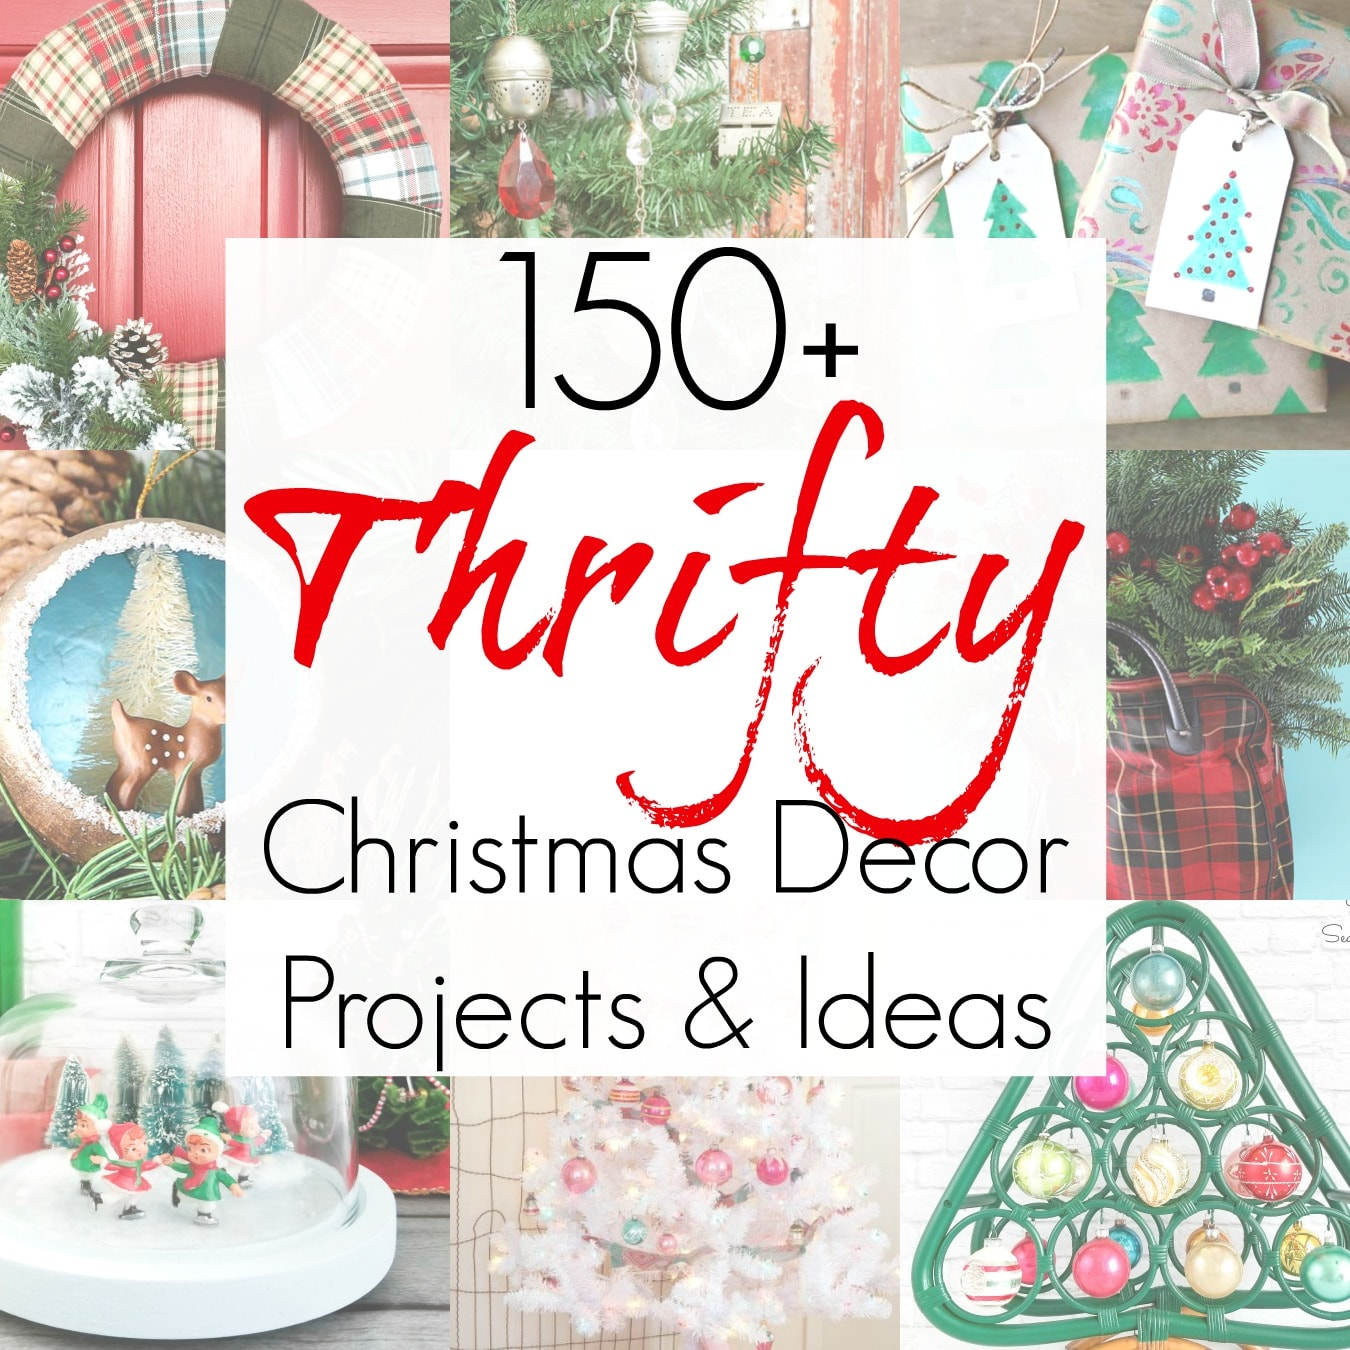 150+ Ideas for Thrifty Christmas Decor